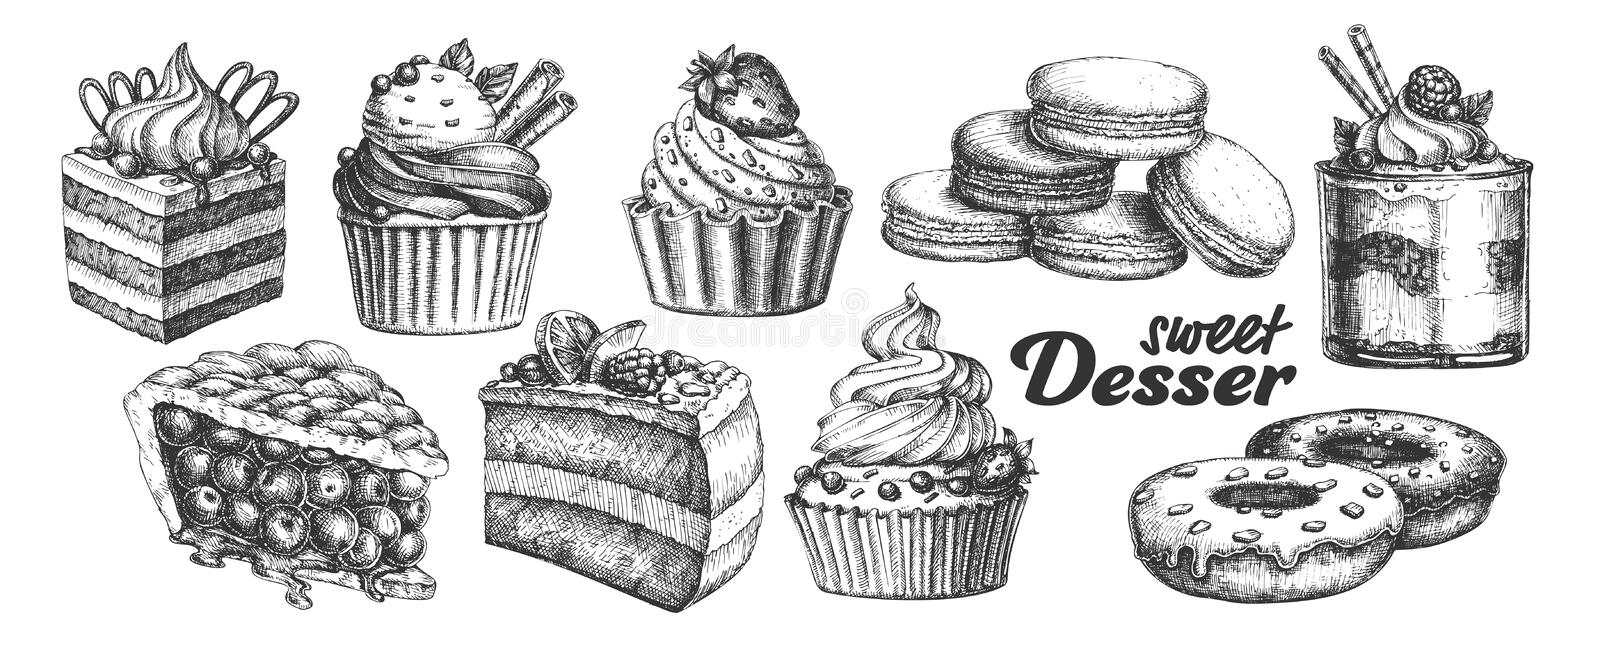 Assortment Baked Sweet Dessert Set Vintage Vector royalty free illustration